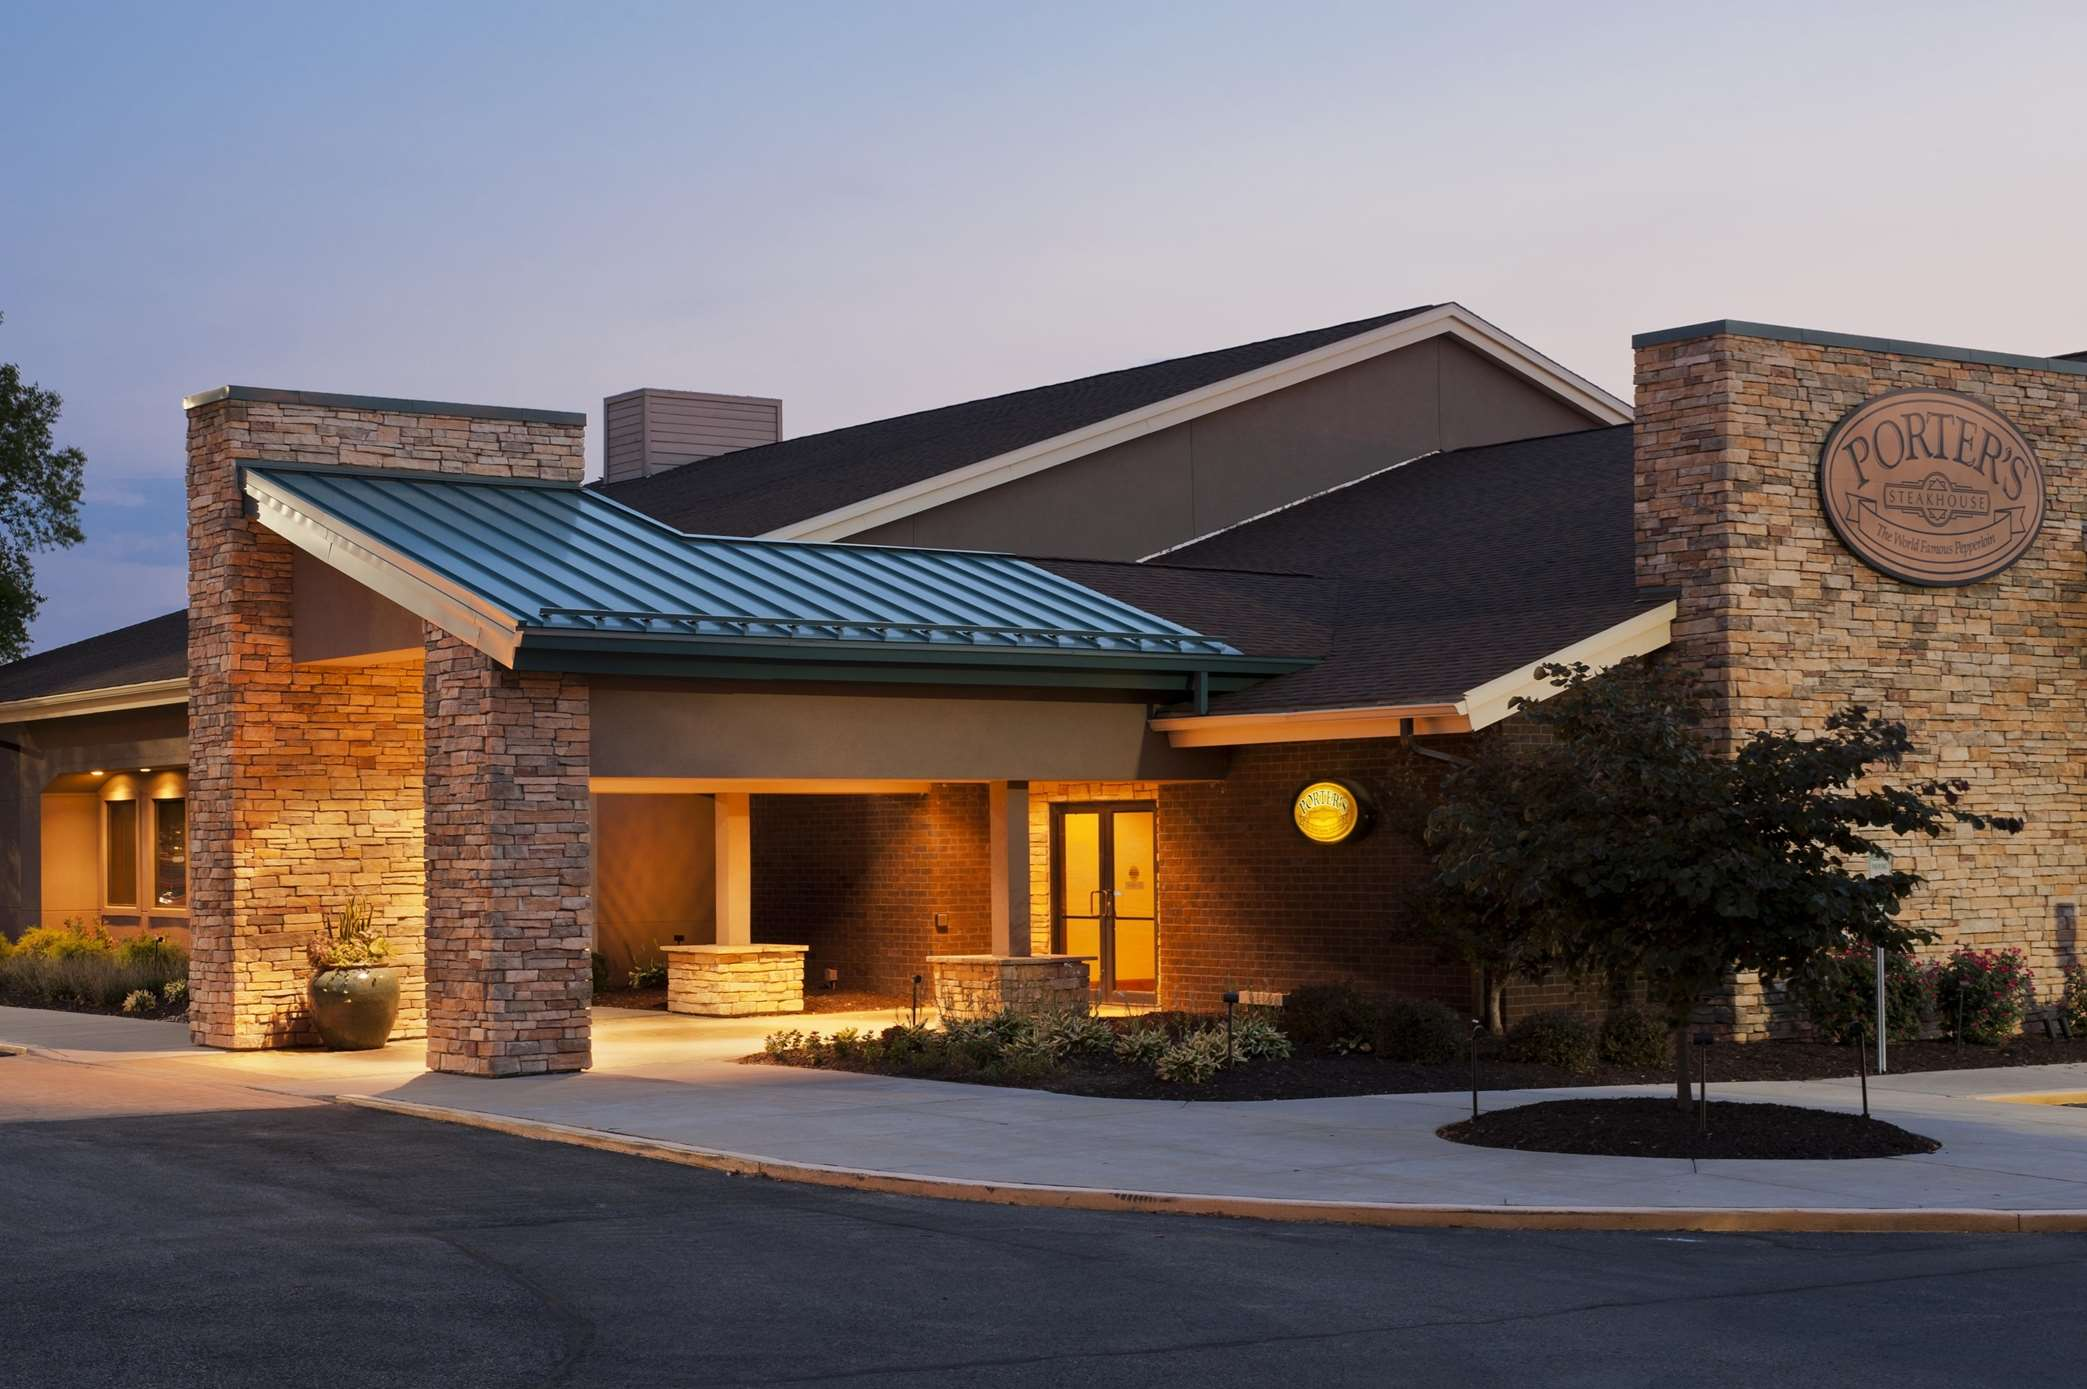 DoubleTree by Hilton Hotel Collinsville - St. Louis image 1